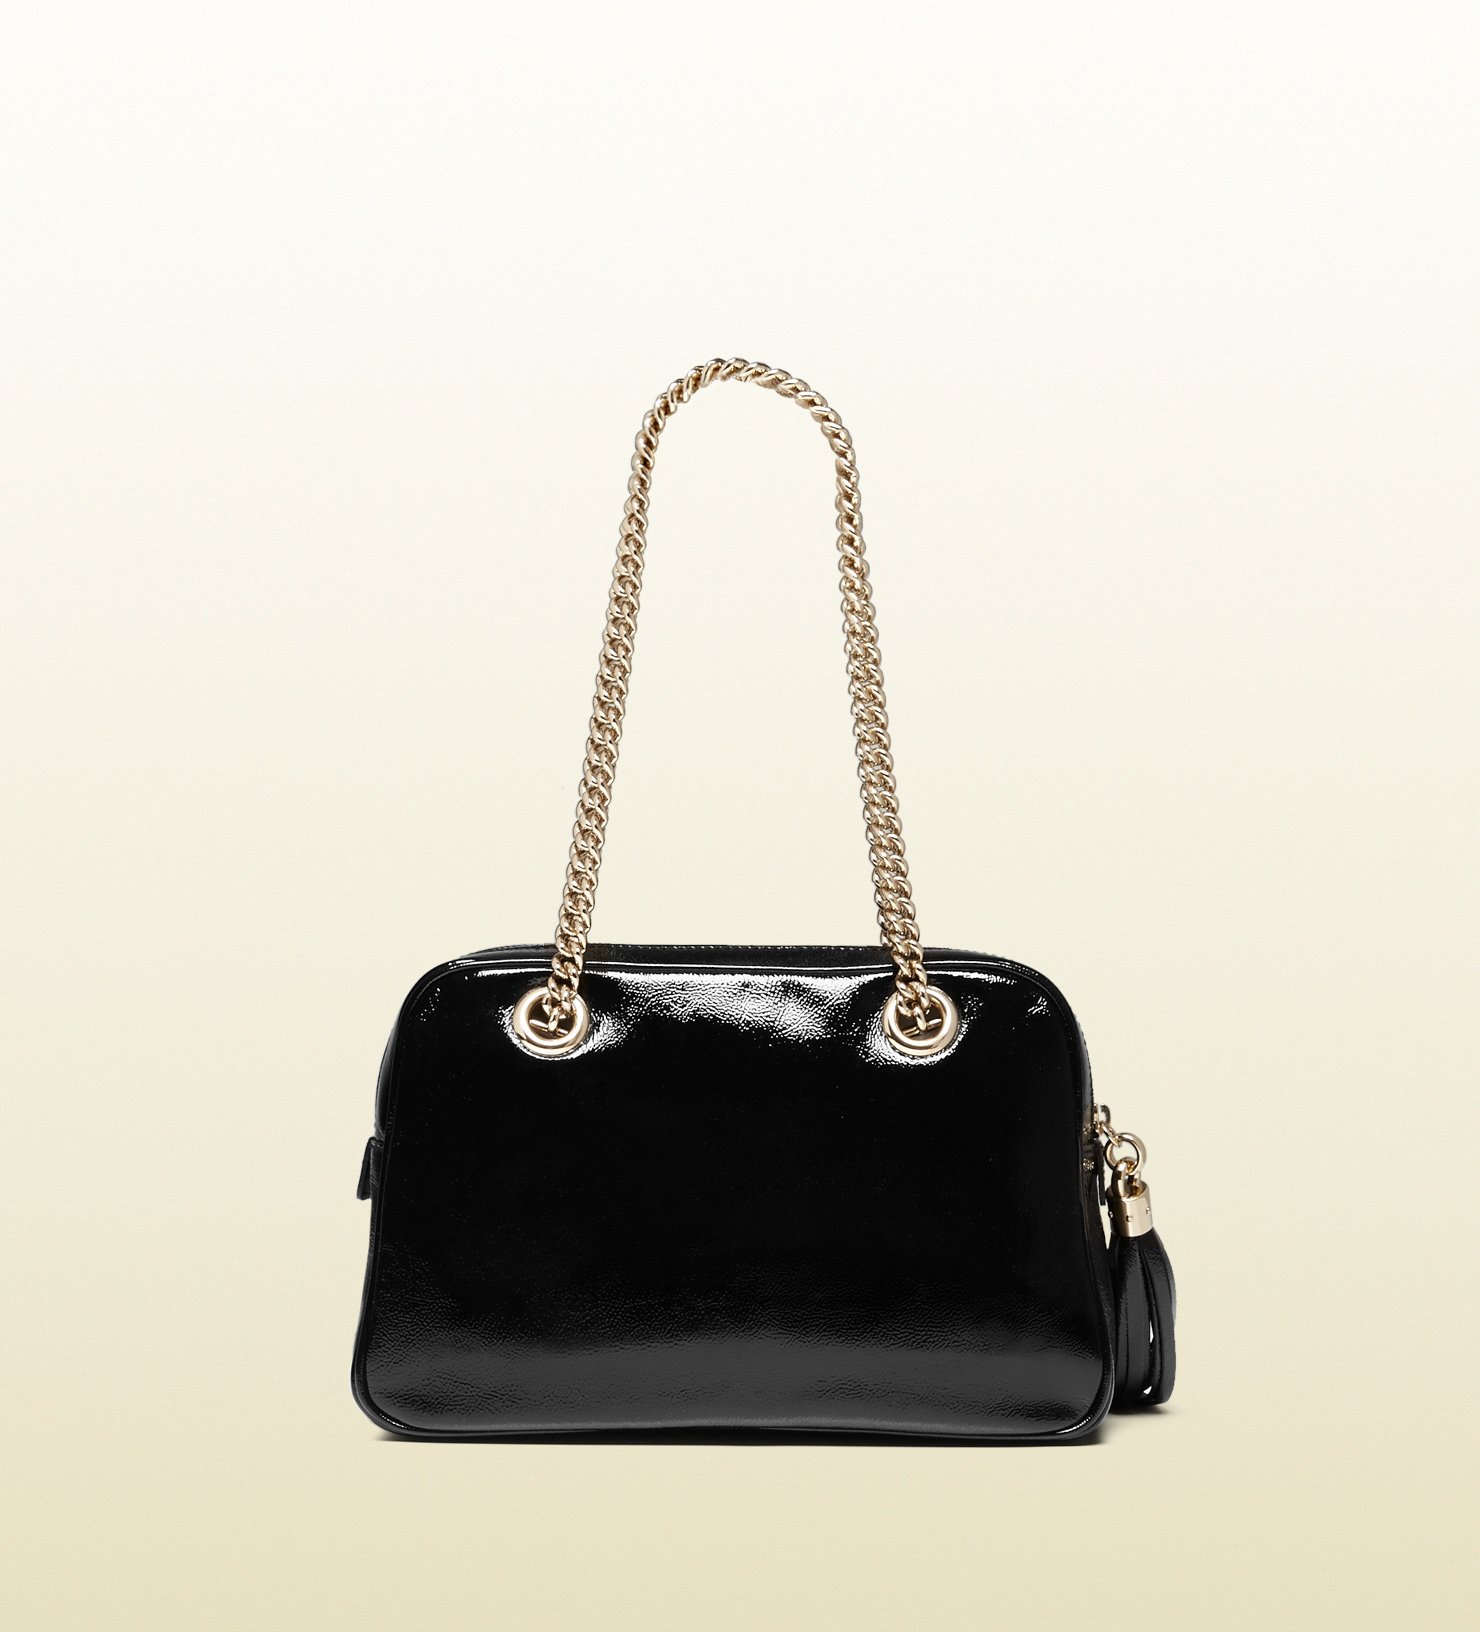 a4e63ce9bf33 Gucci Soho Soft Patent Leather Chain Shoulder Bag in Black - Lyst